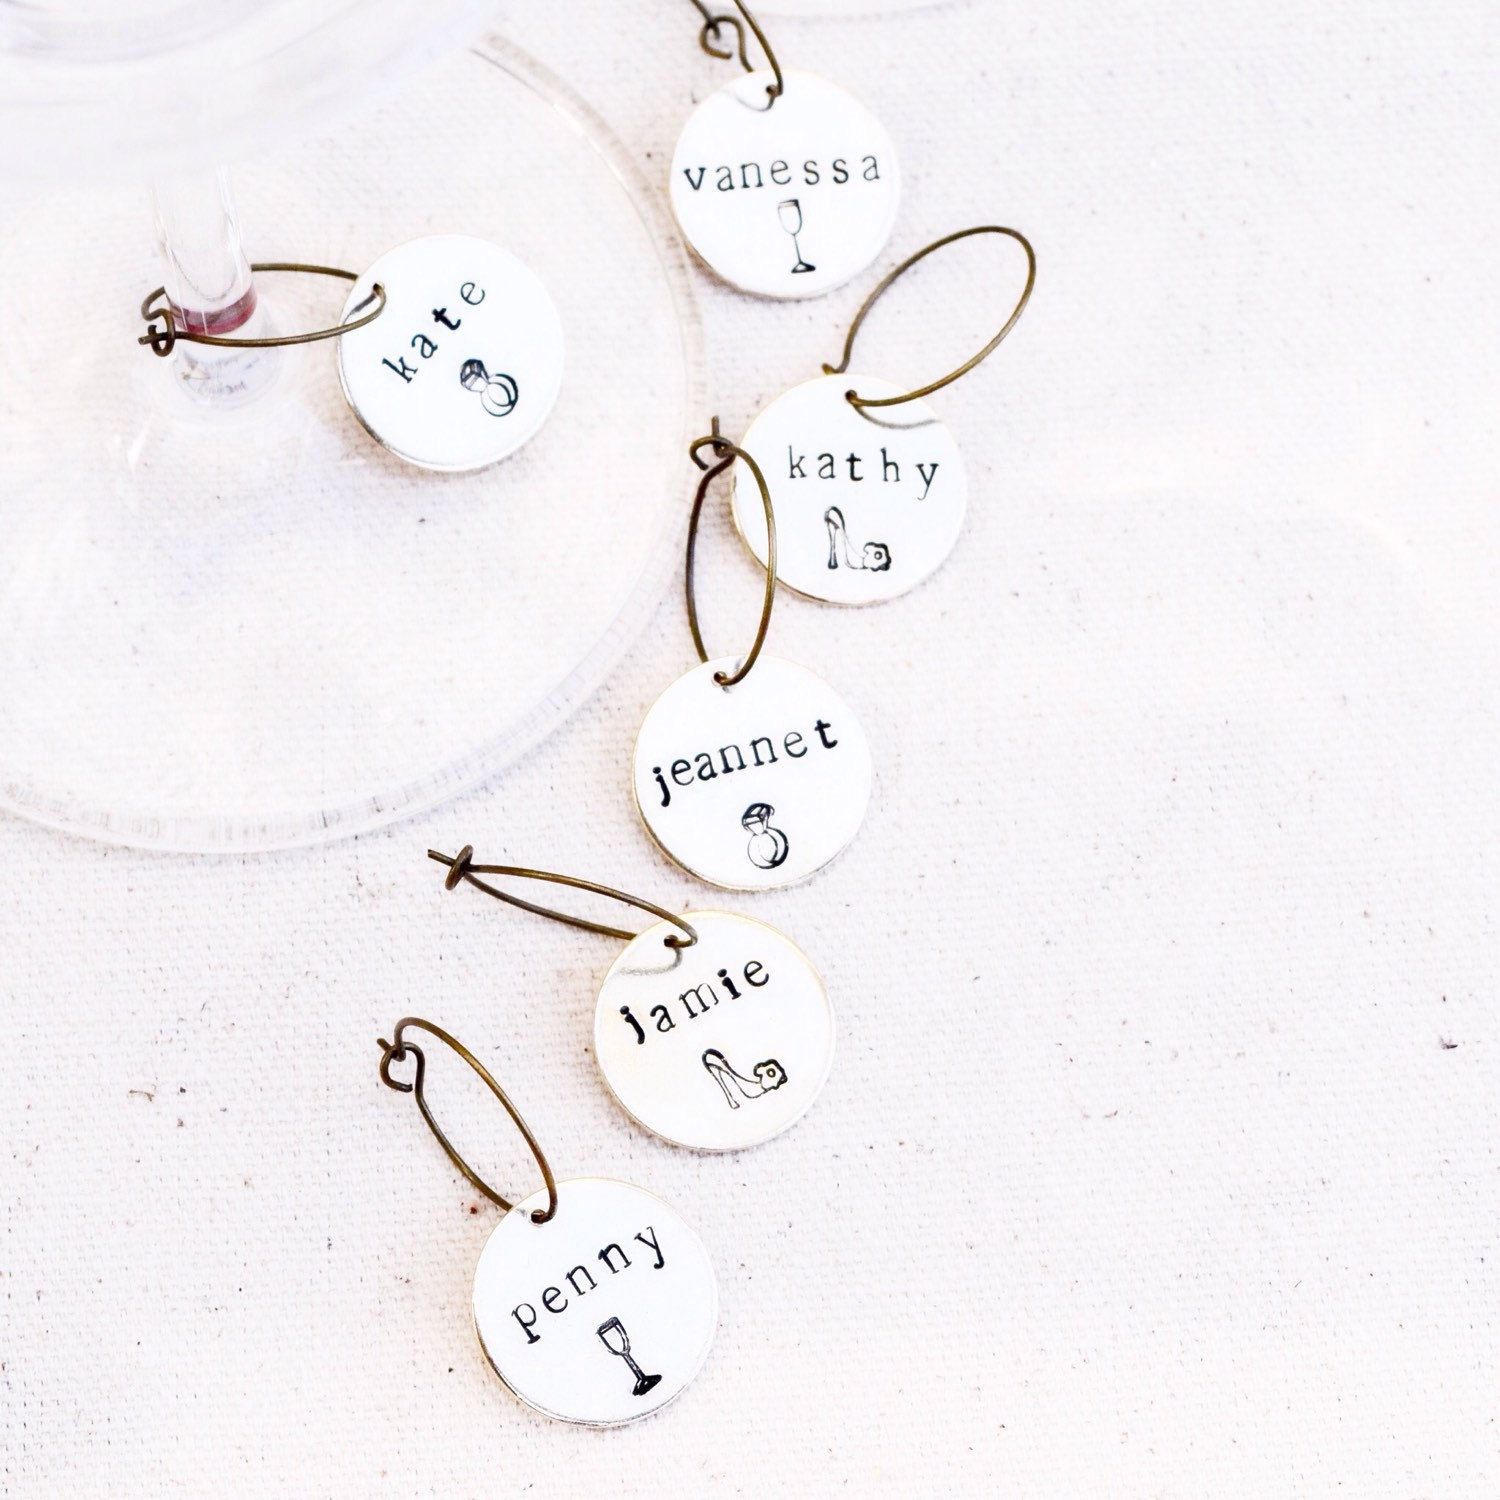 bachelorette wine charm favors | wine charms favors http://emmalinebride.com/favors/wine-charms-favors